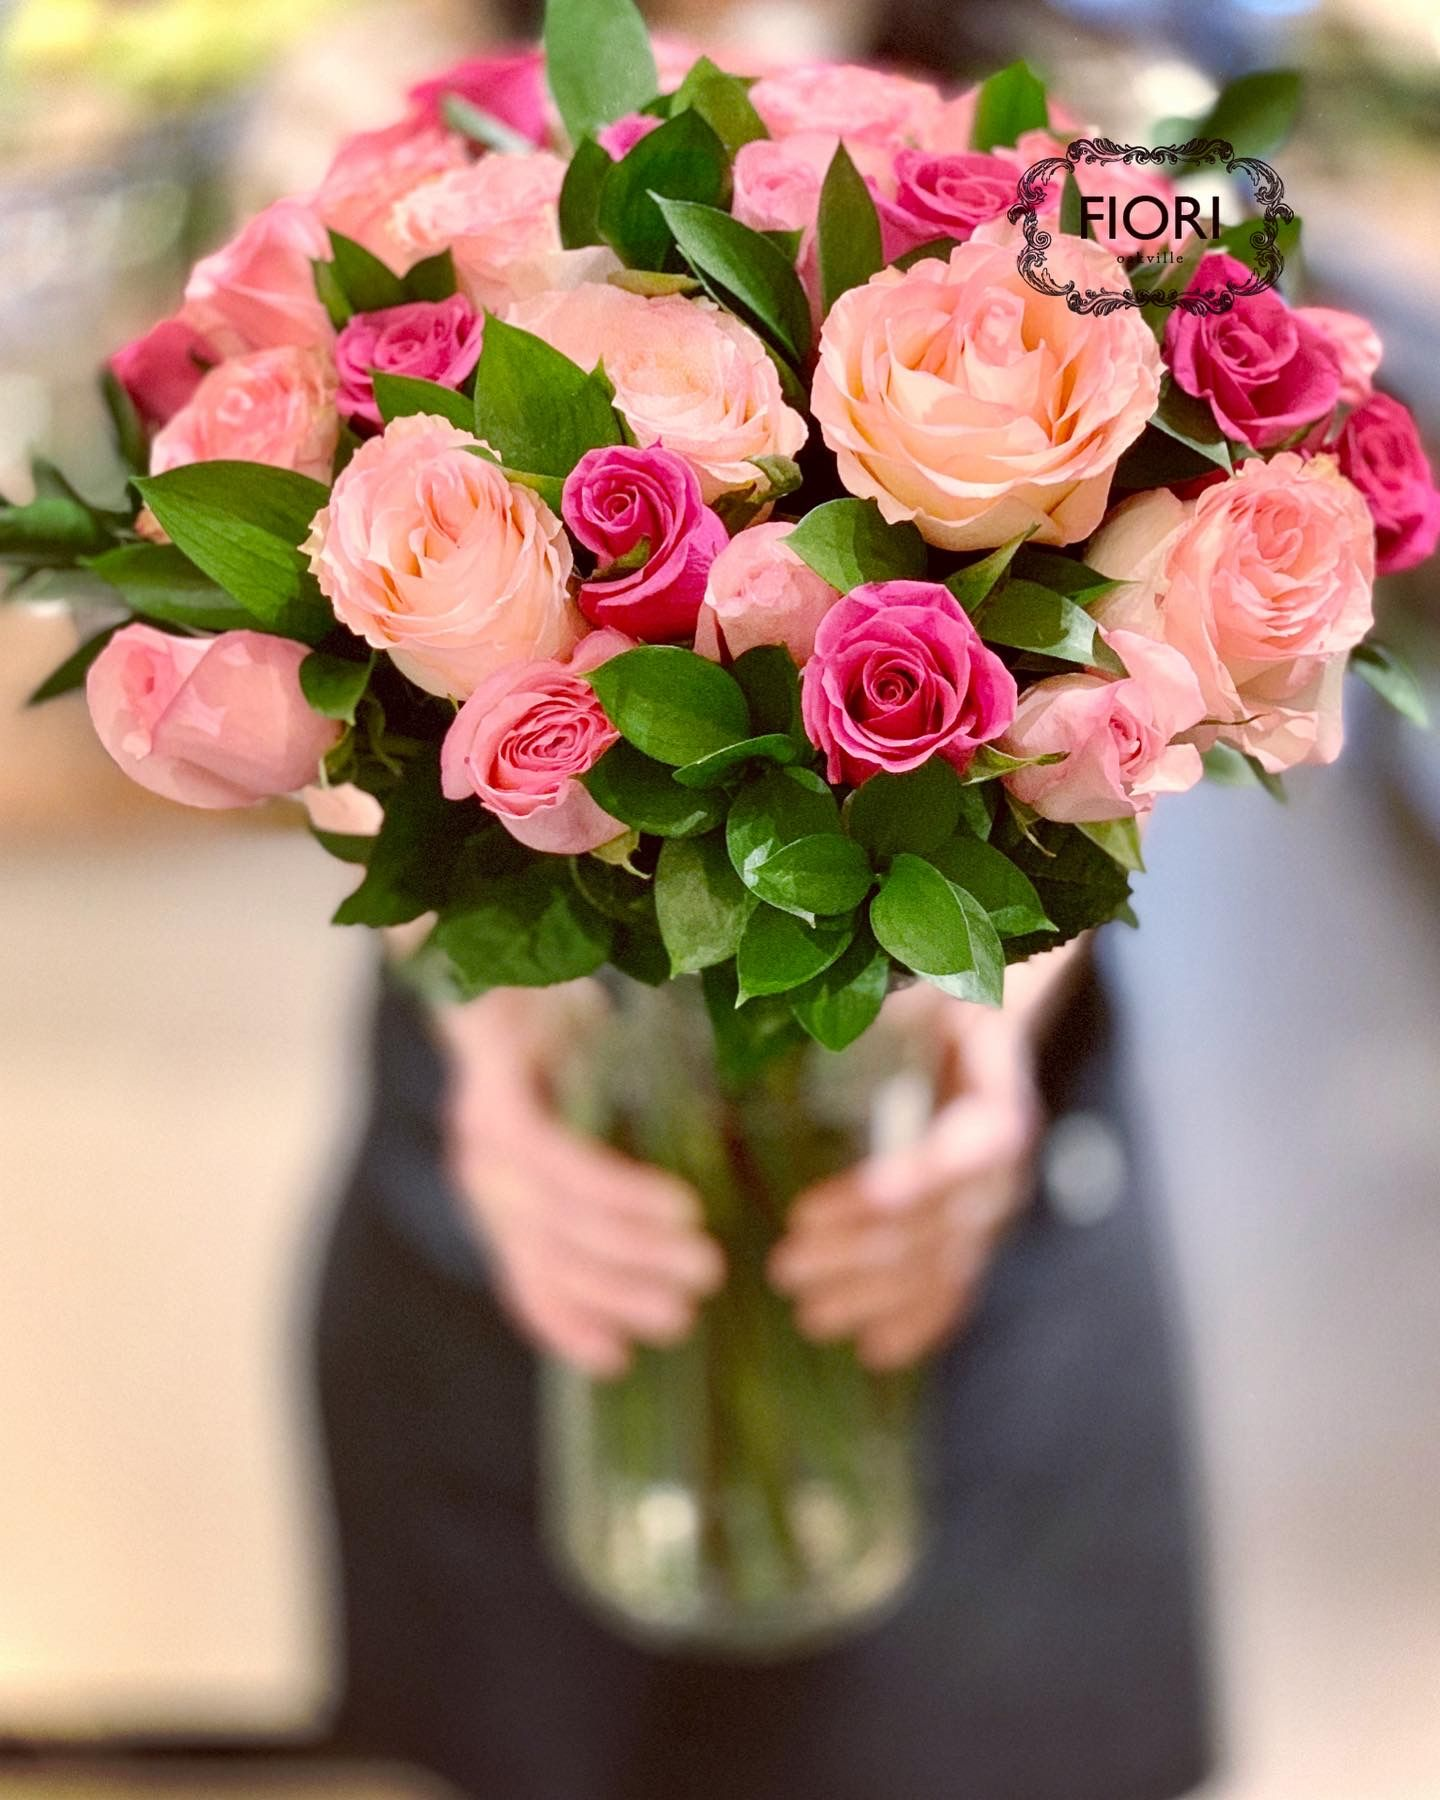 Ultimate Love 3 DOZEN PINK ROSES in 2020 Pink roses